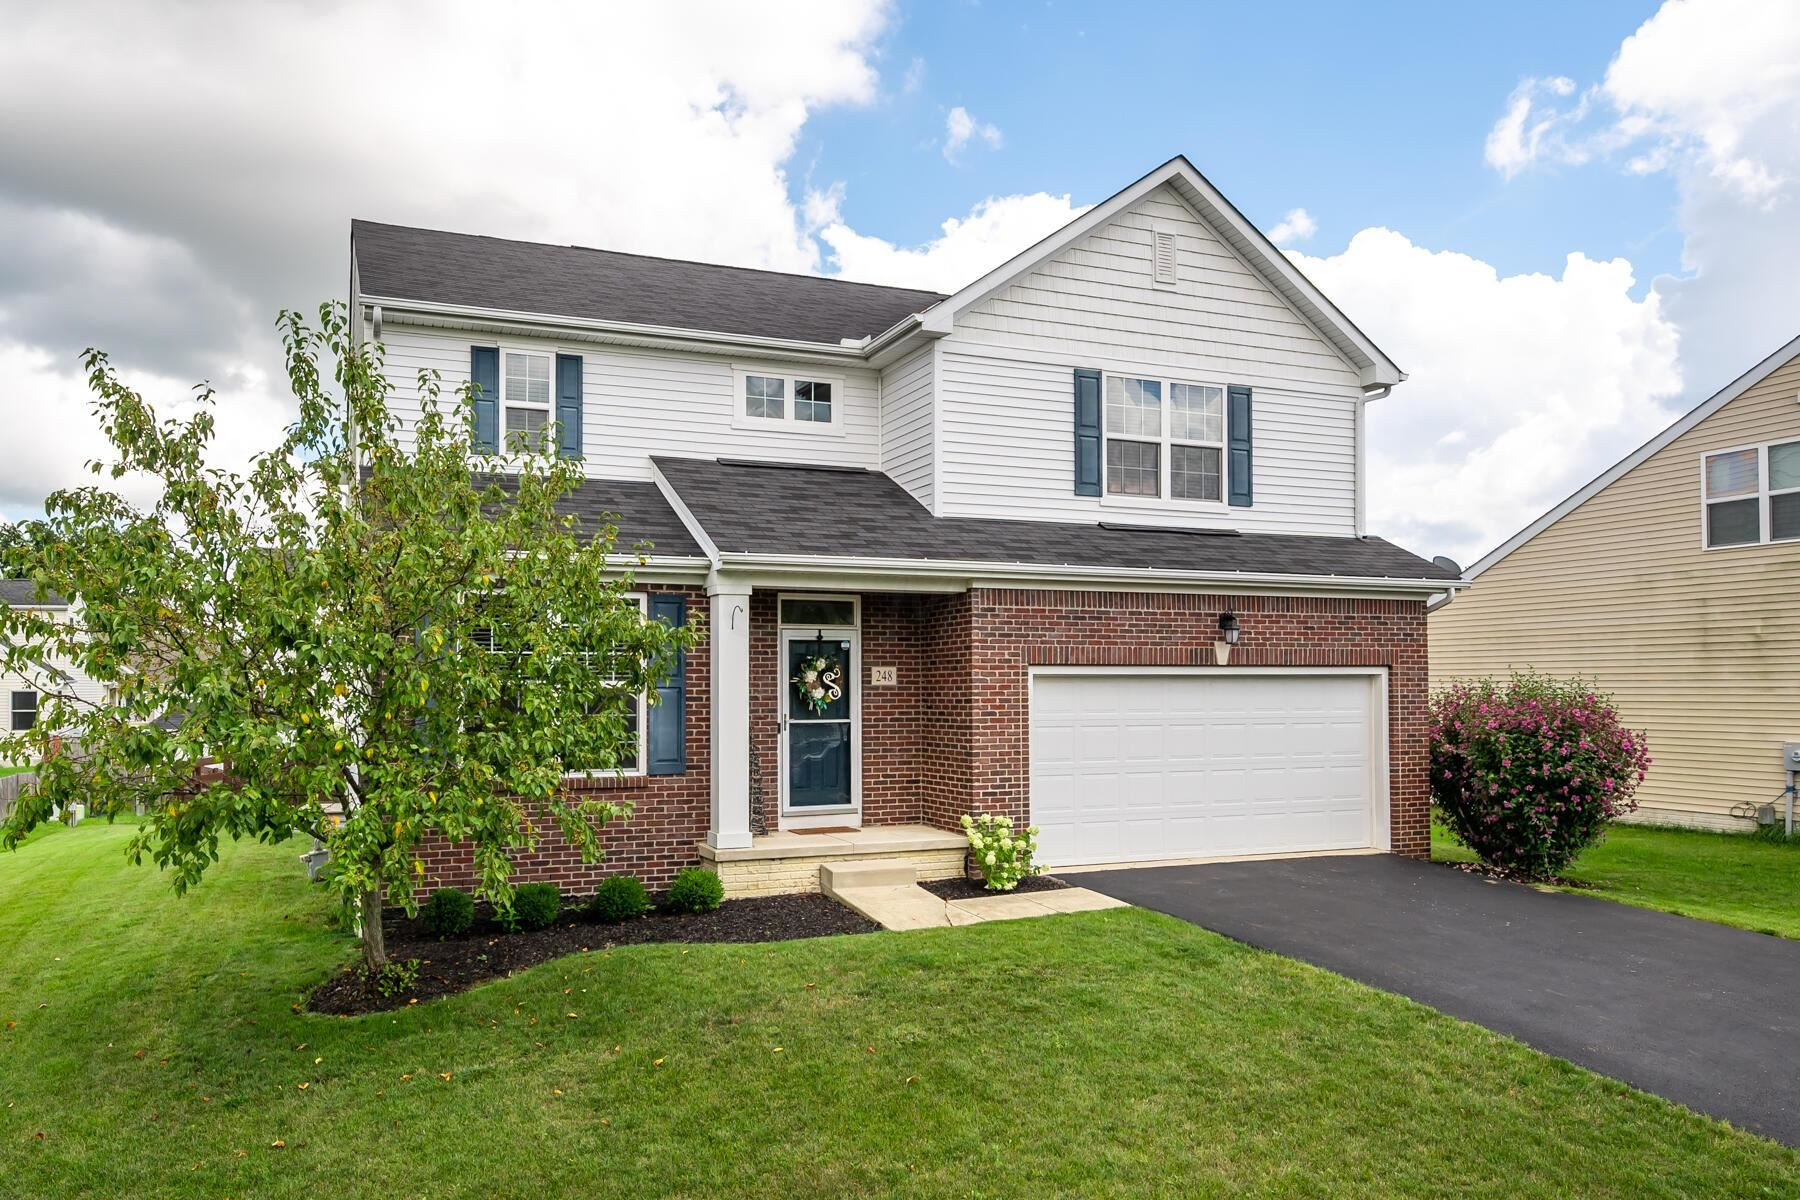 Photo of 248 Whitewater Court, Delaware, OH 43015 (MLS # 221035658)